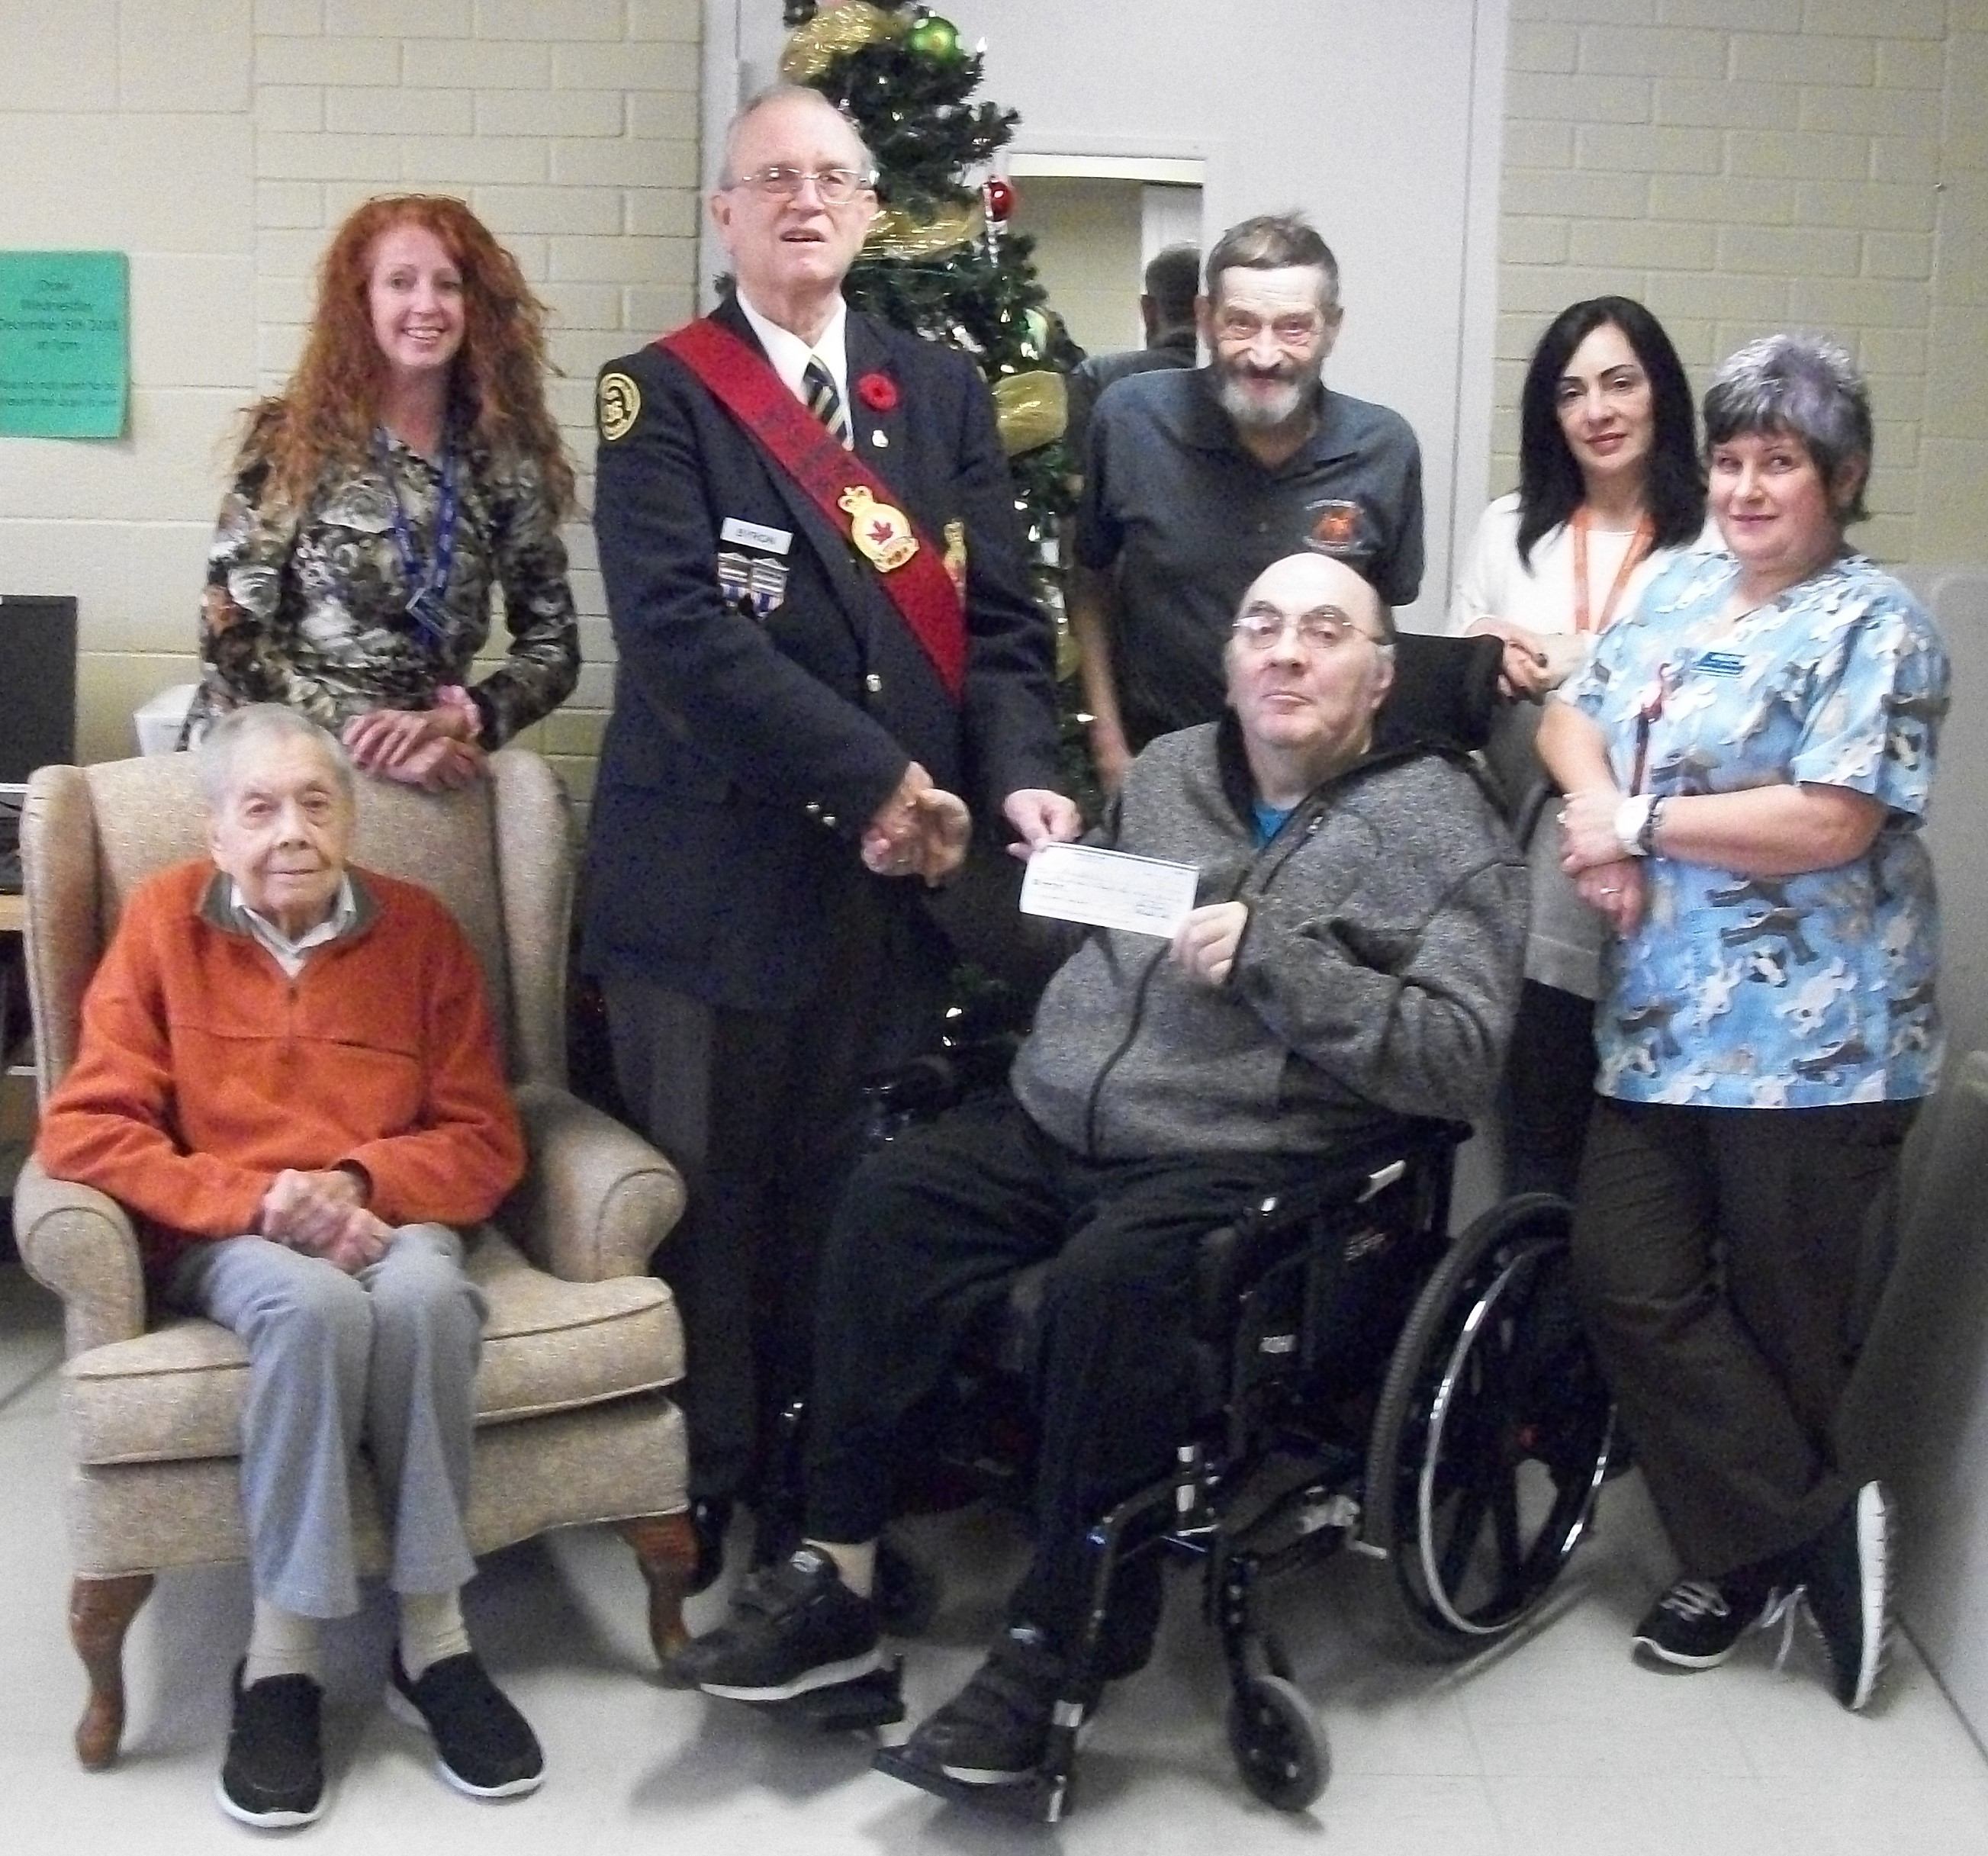 http://br36dundas.org/2018RemembranceChequepresentations/2018RemembranceChequepics/2018%20BLACKADAR%20RETIREMENT.jpg